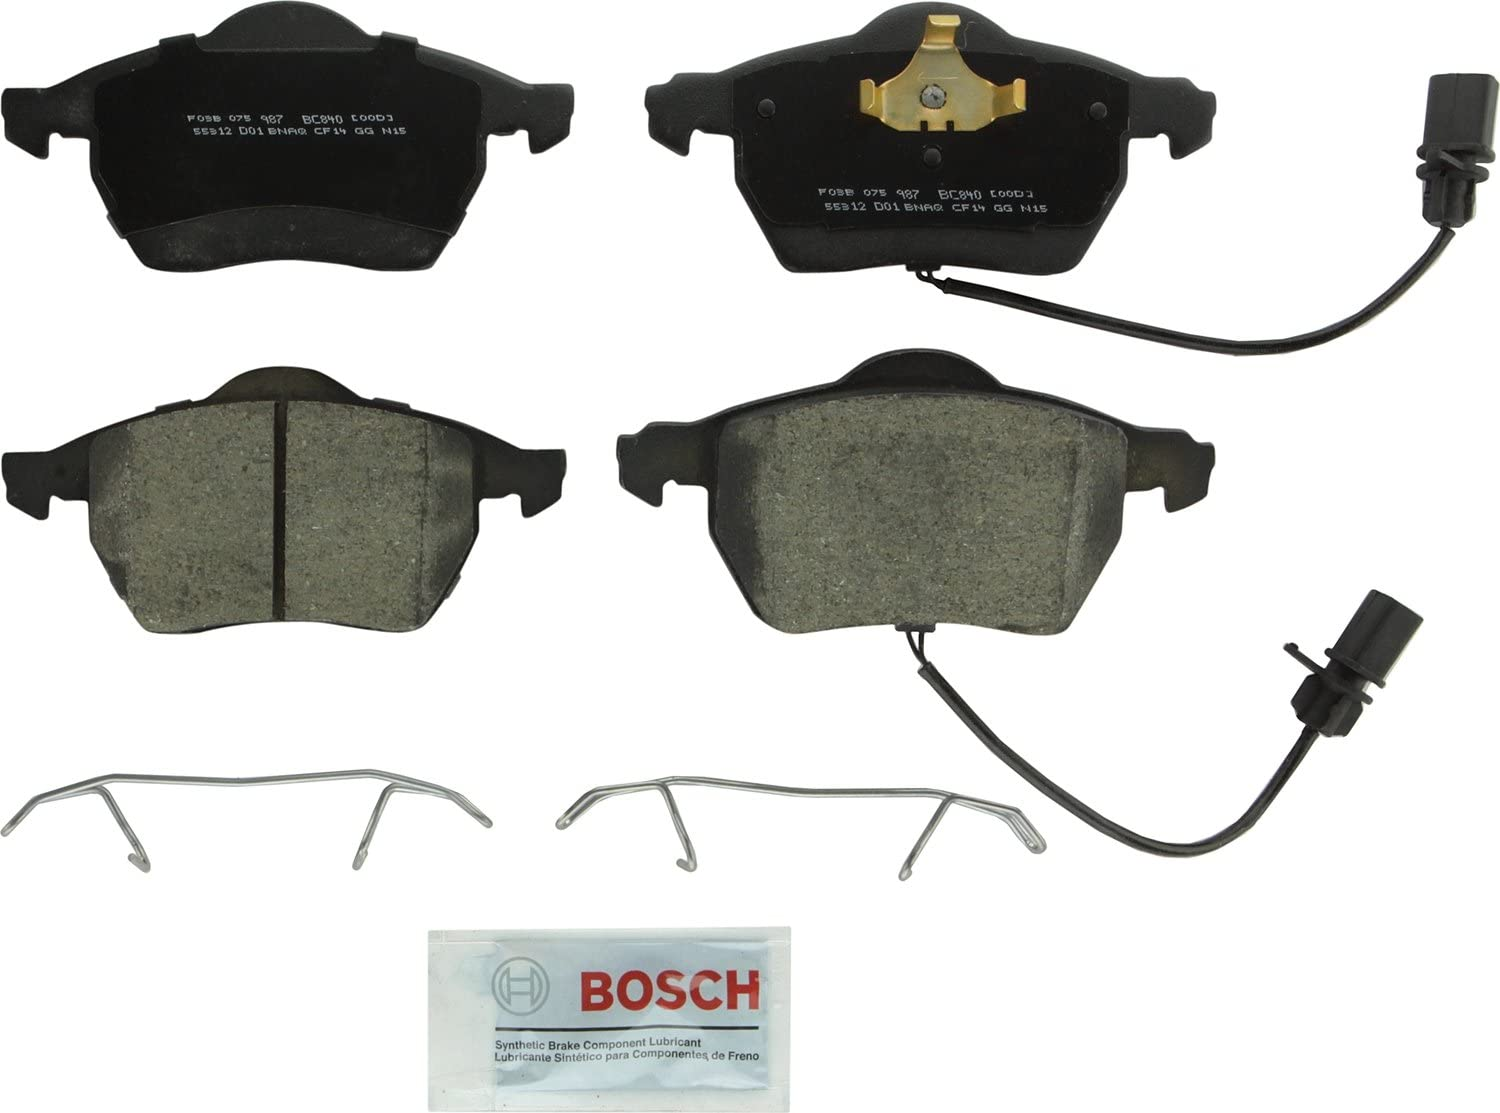 Bosch BC340 QuietCast Premium Disc Brake Pad Set